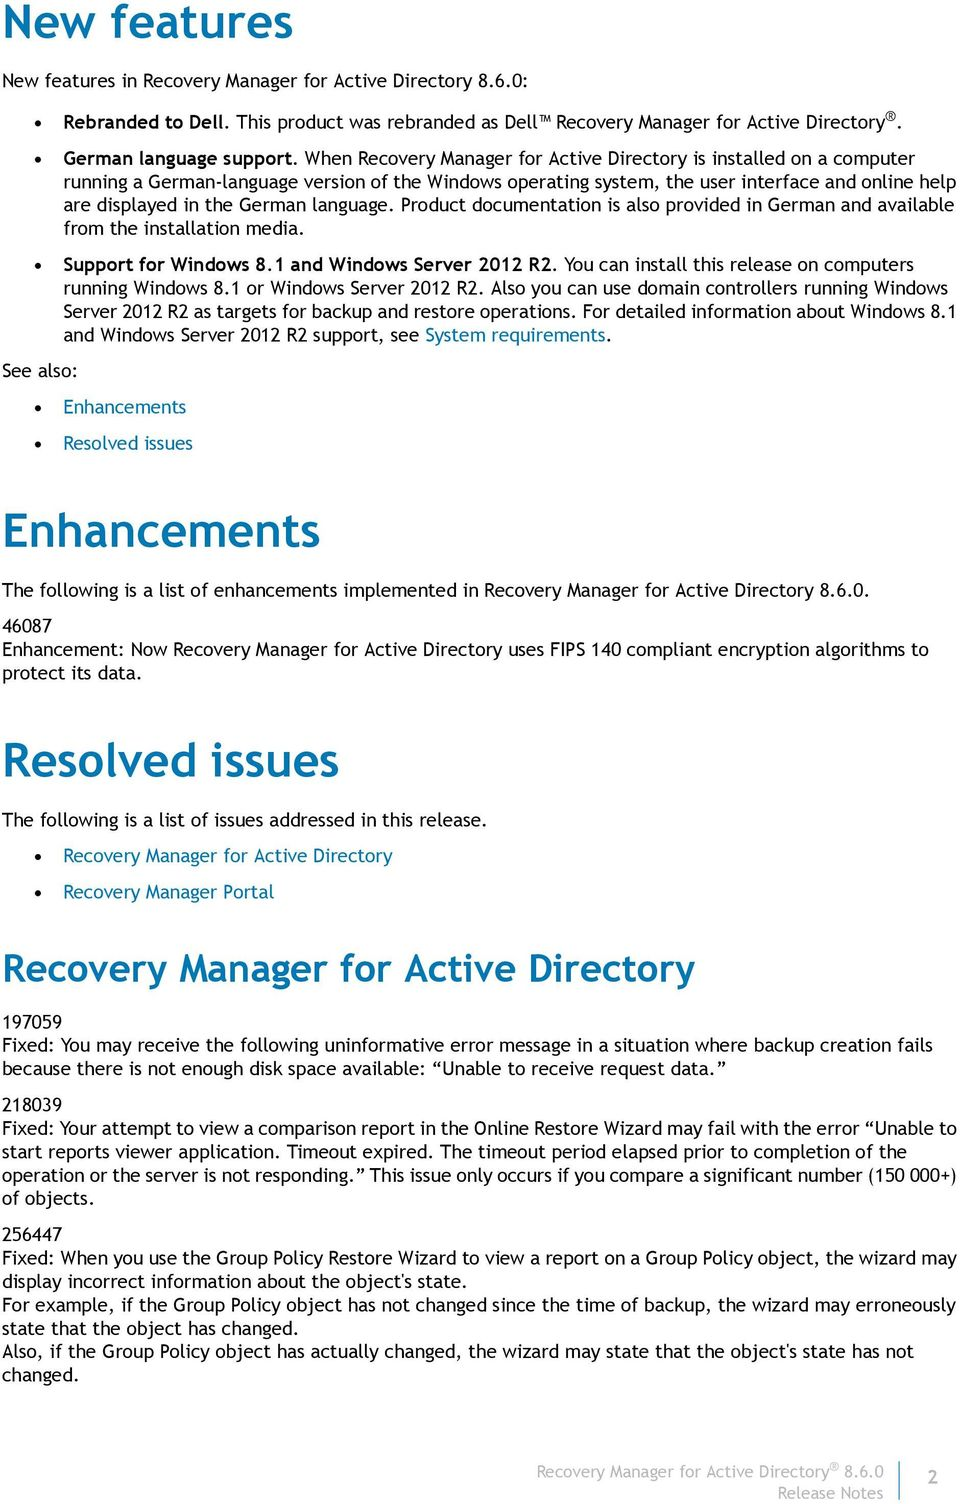 language. Product documentation is also provided in German and available from the installation media. Support for Windows 8.1 and Windows Server 2012 R2.